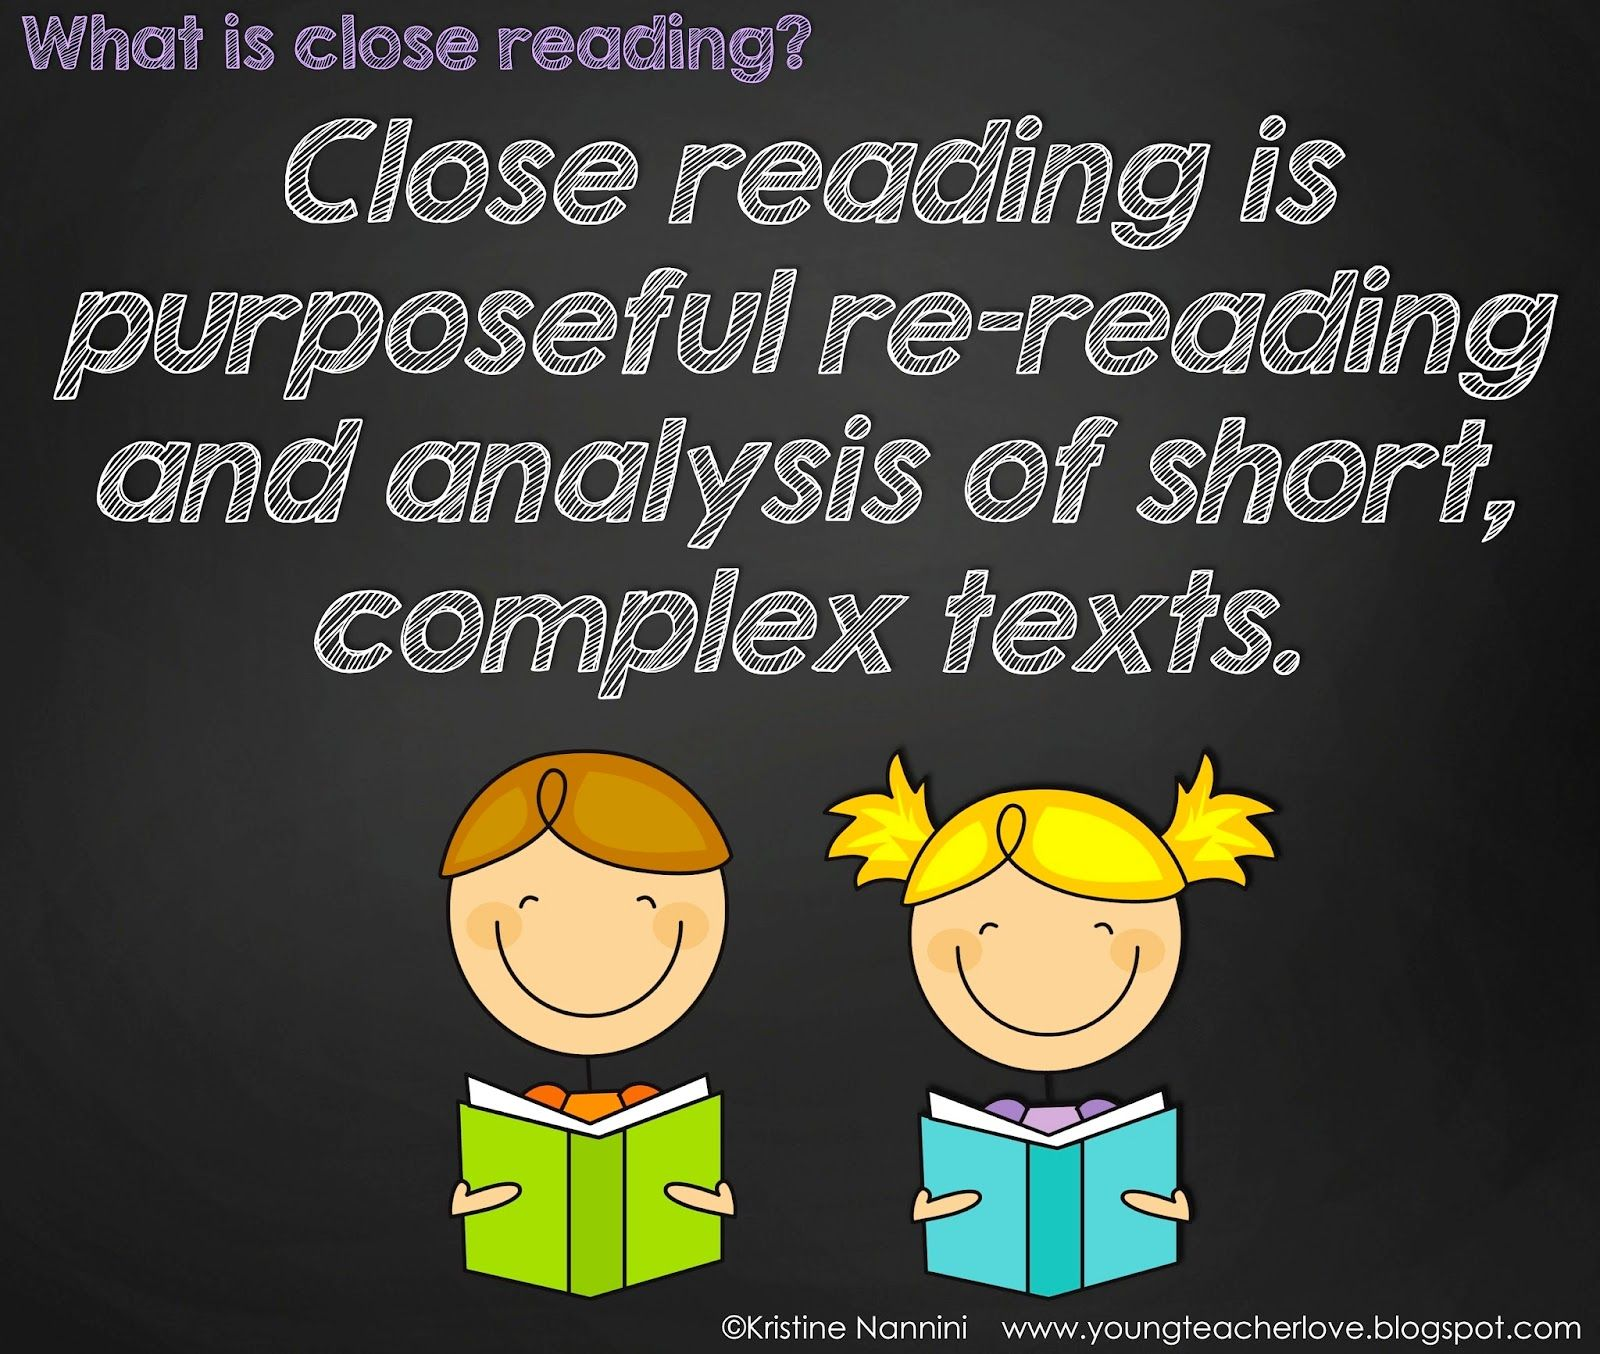 everyman close reading Ap english literature and composition unit 1 – summer reading reinforcement approximate # of weeks: 3 weeks essential questions: what is a close reading of a text and how can it effectively help develop better readers how do annotations help focus  everyman by anonymous (rl.